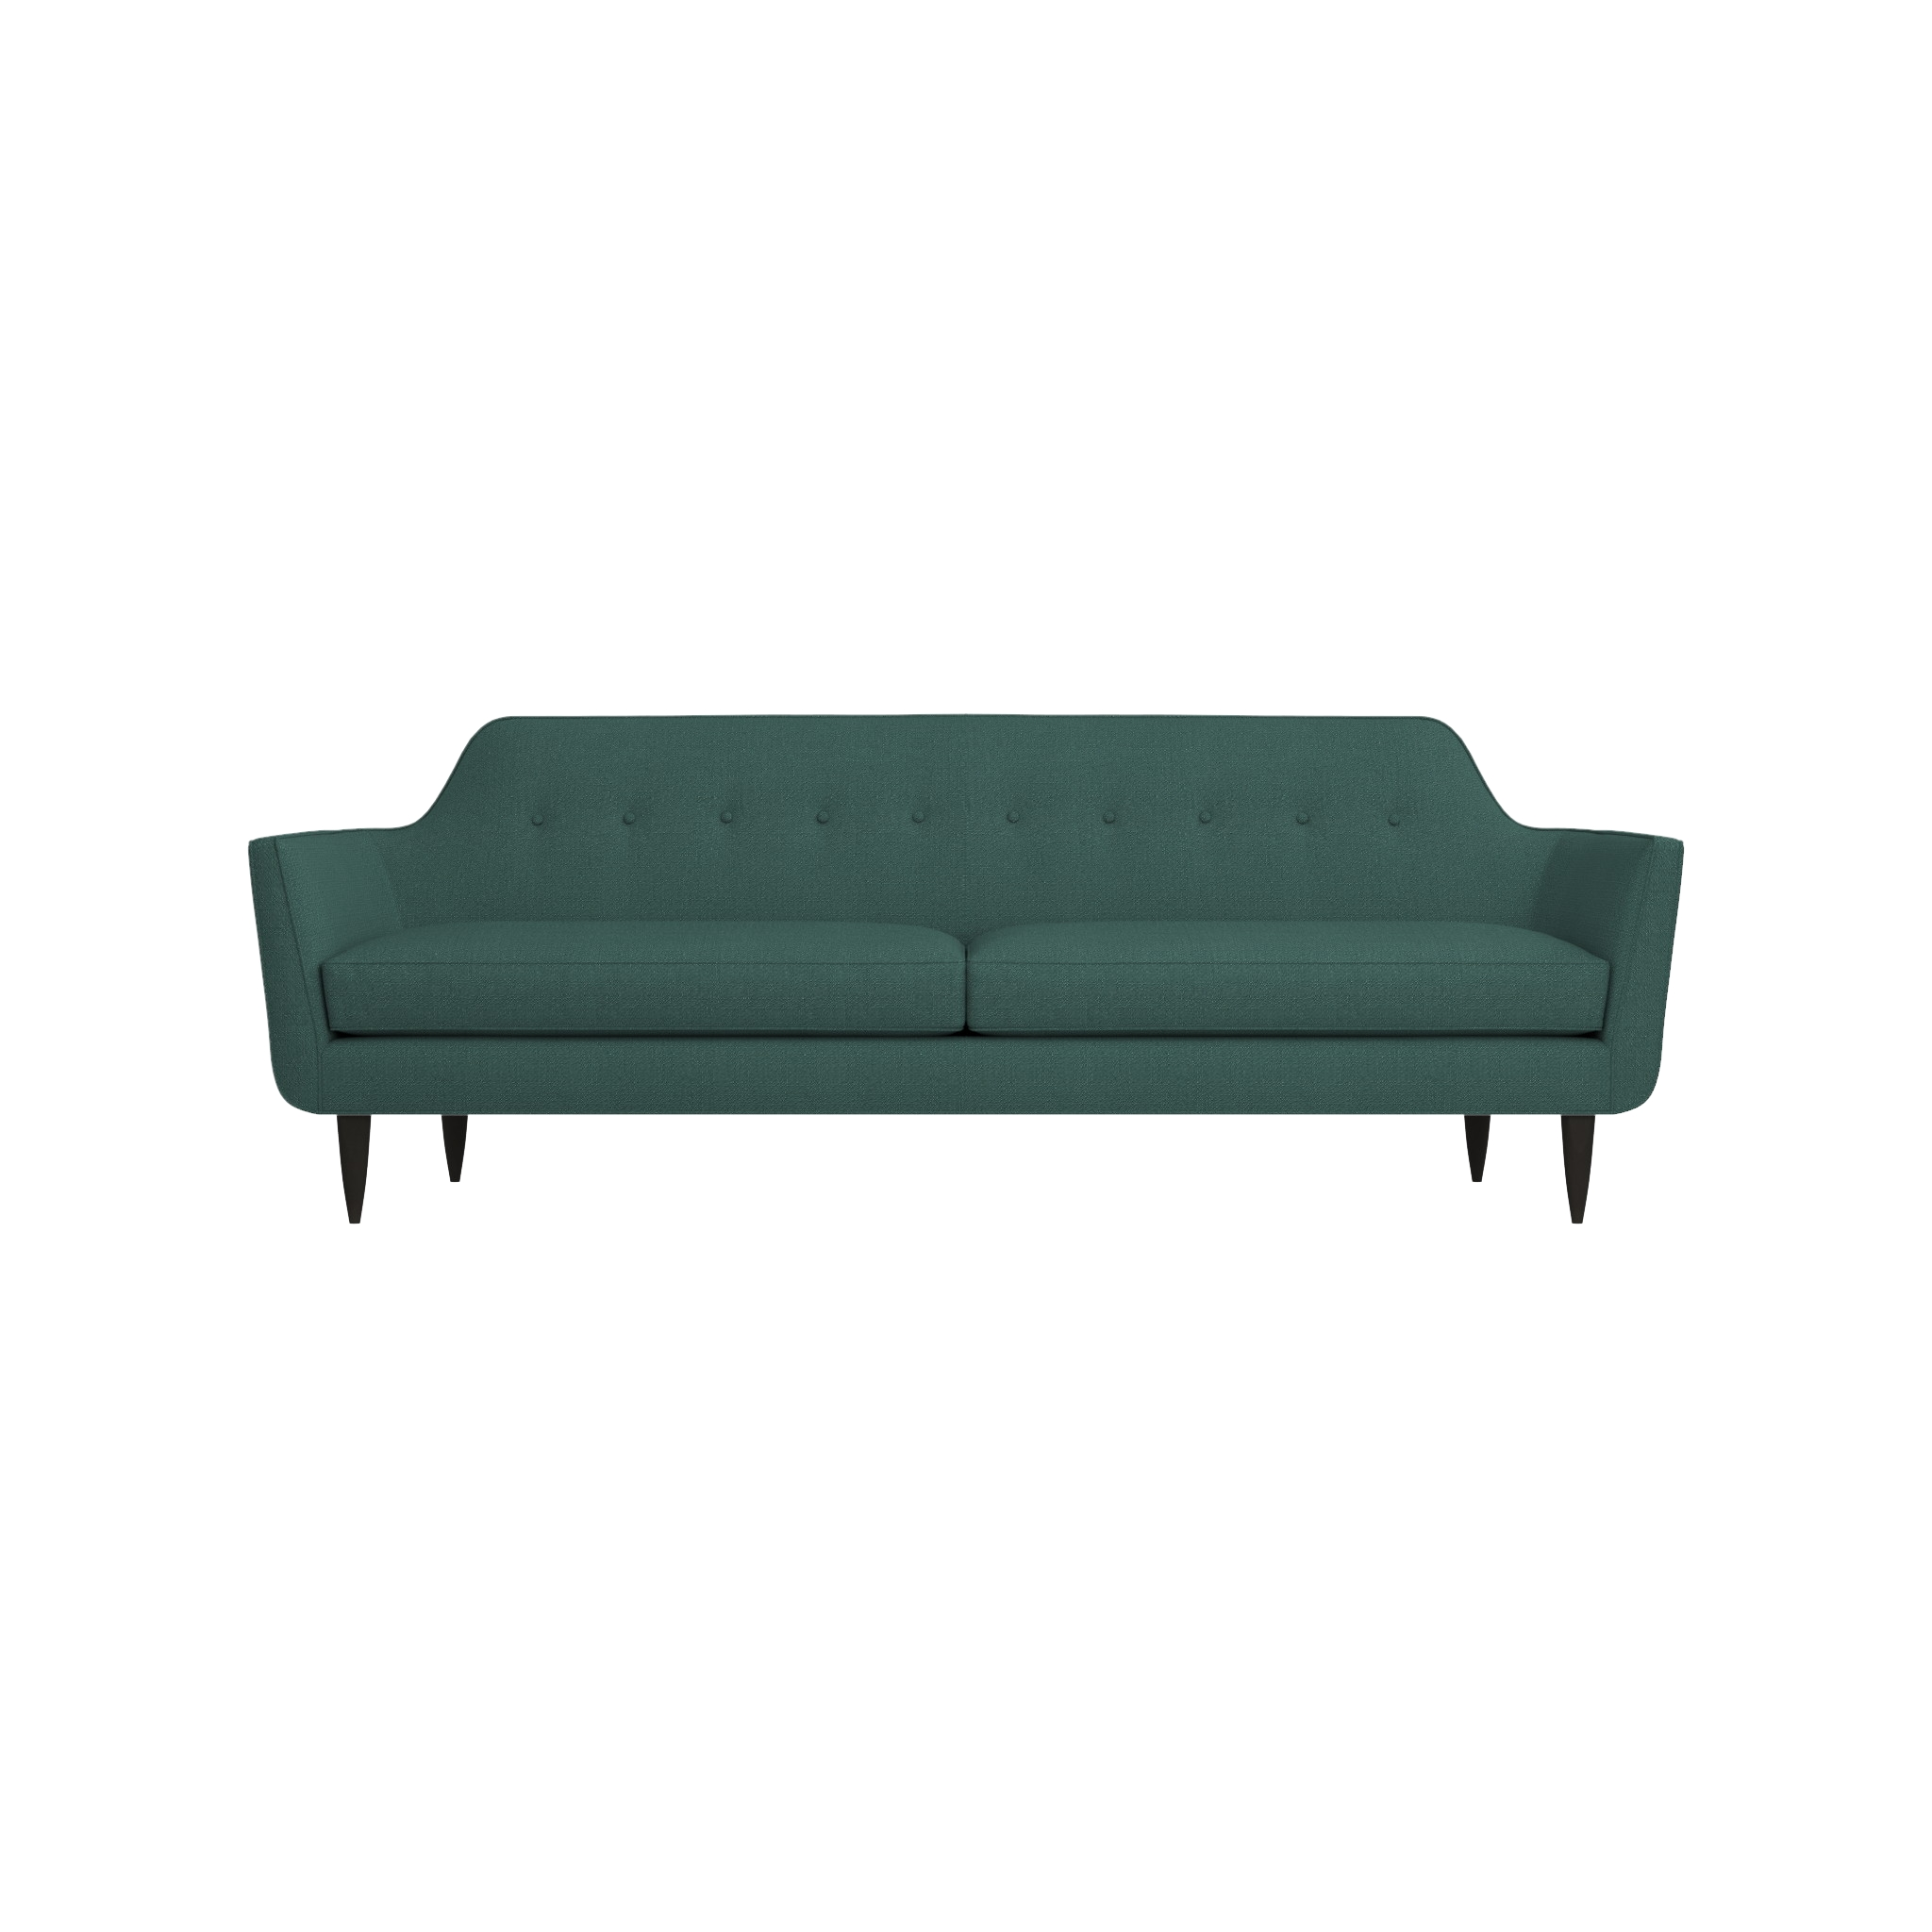 Gia Modern Blue Tufted Sofa | Crate And Barrel Within Crate And Barrel Futon Sofas (Image 18 of 20)